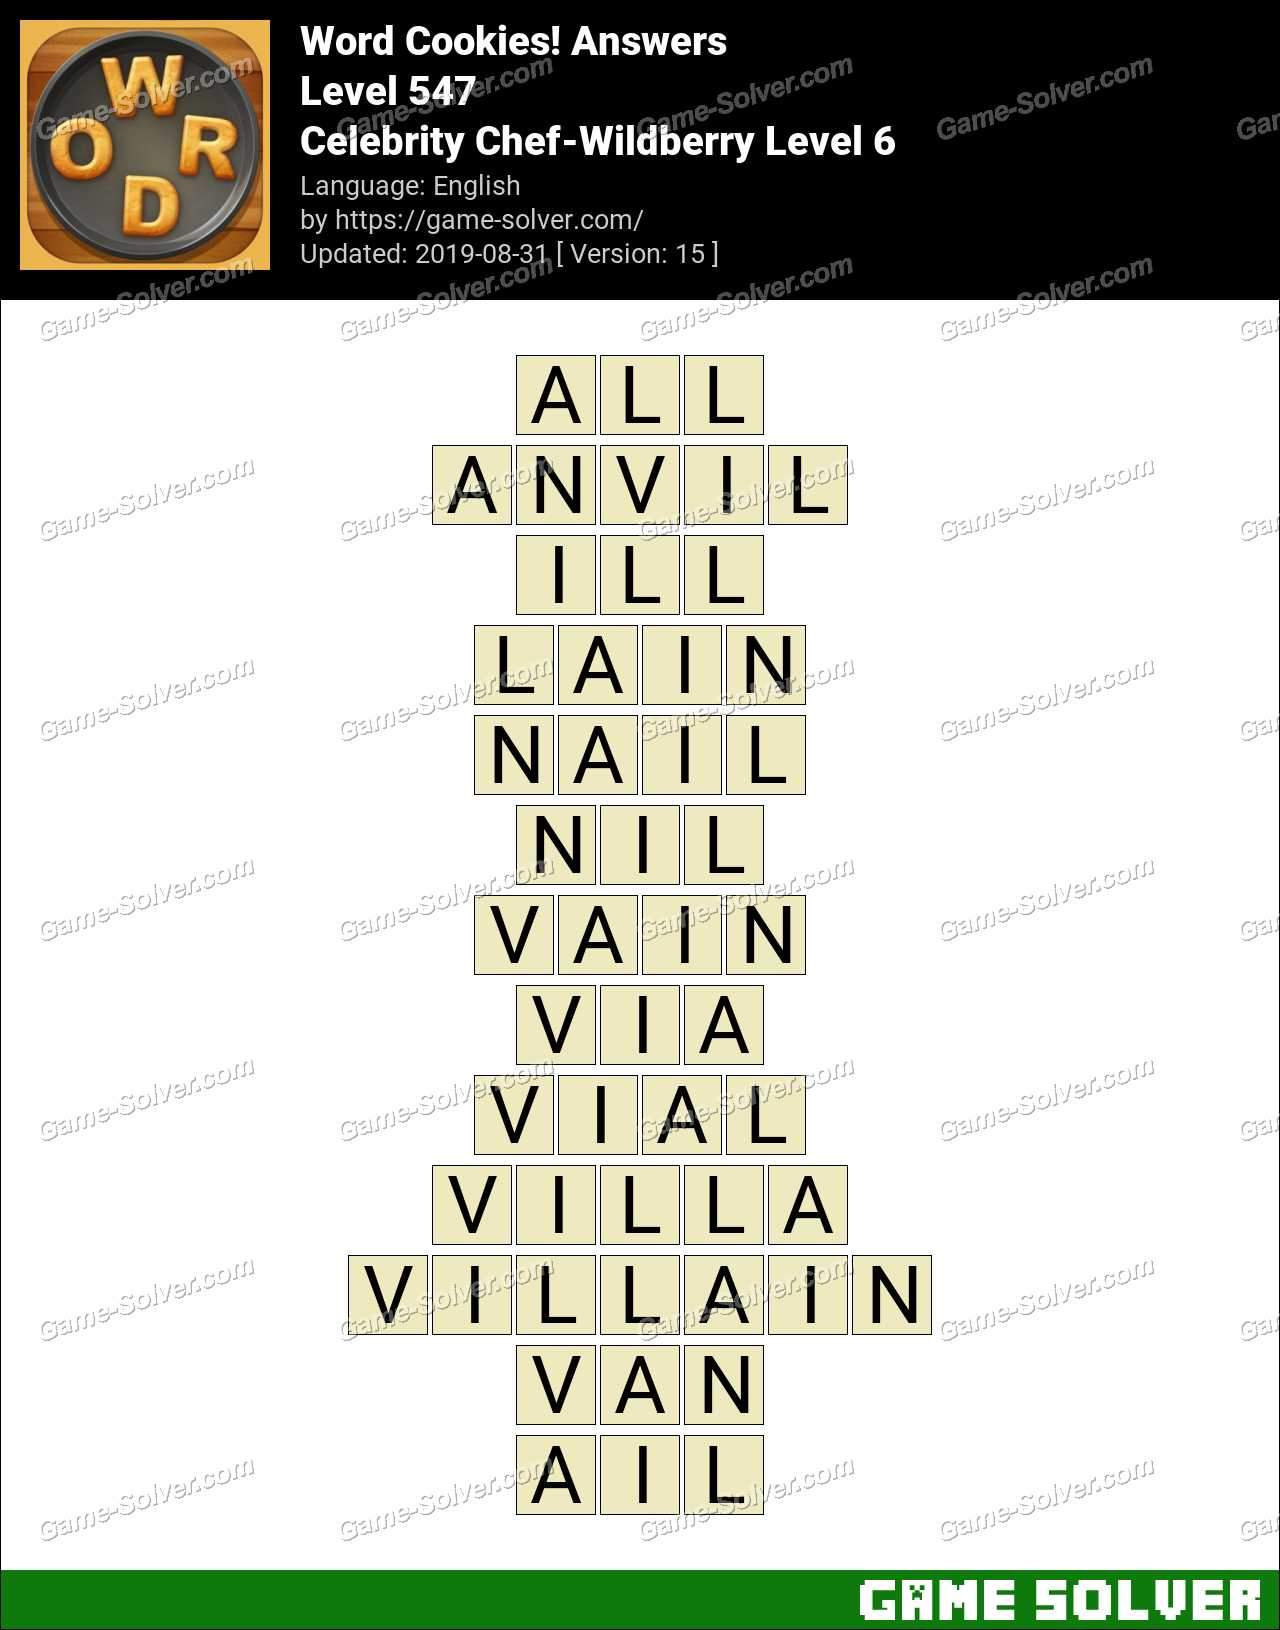 Word Cookies Celebrity Chef-Wildberry Level 6 Answers